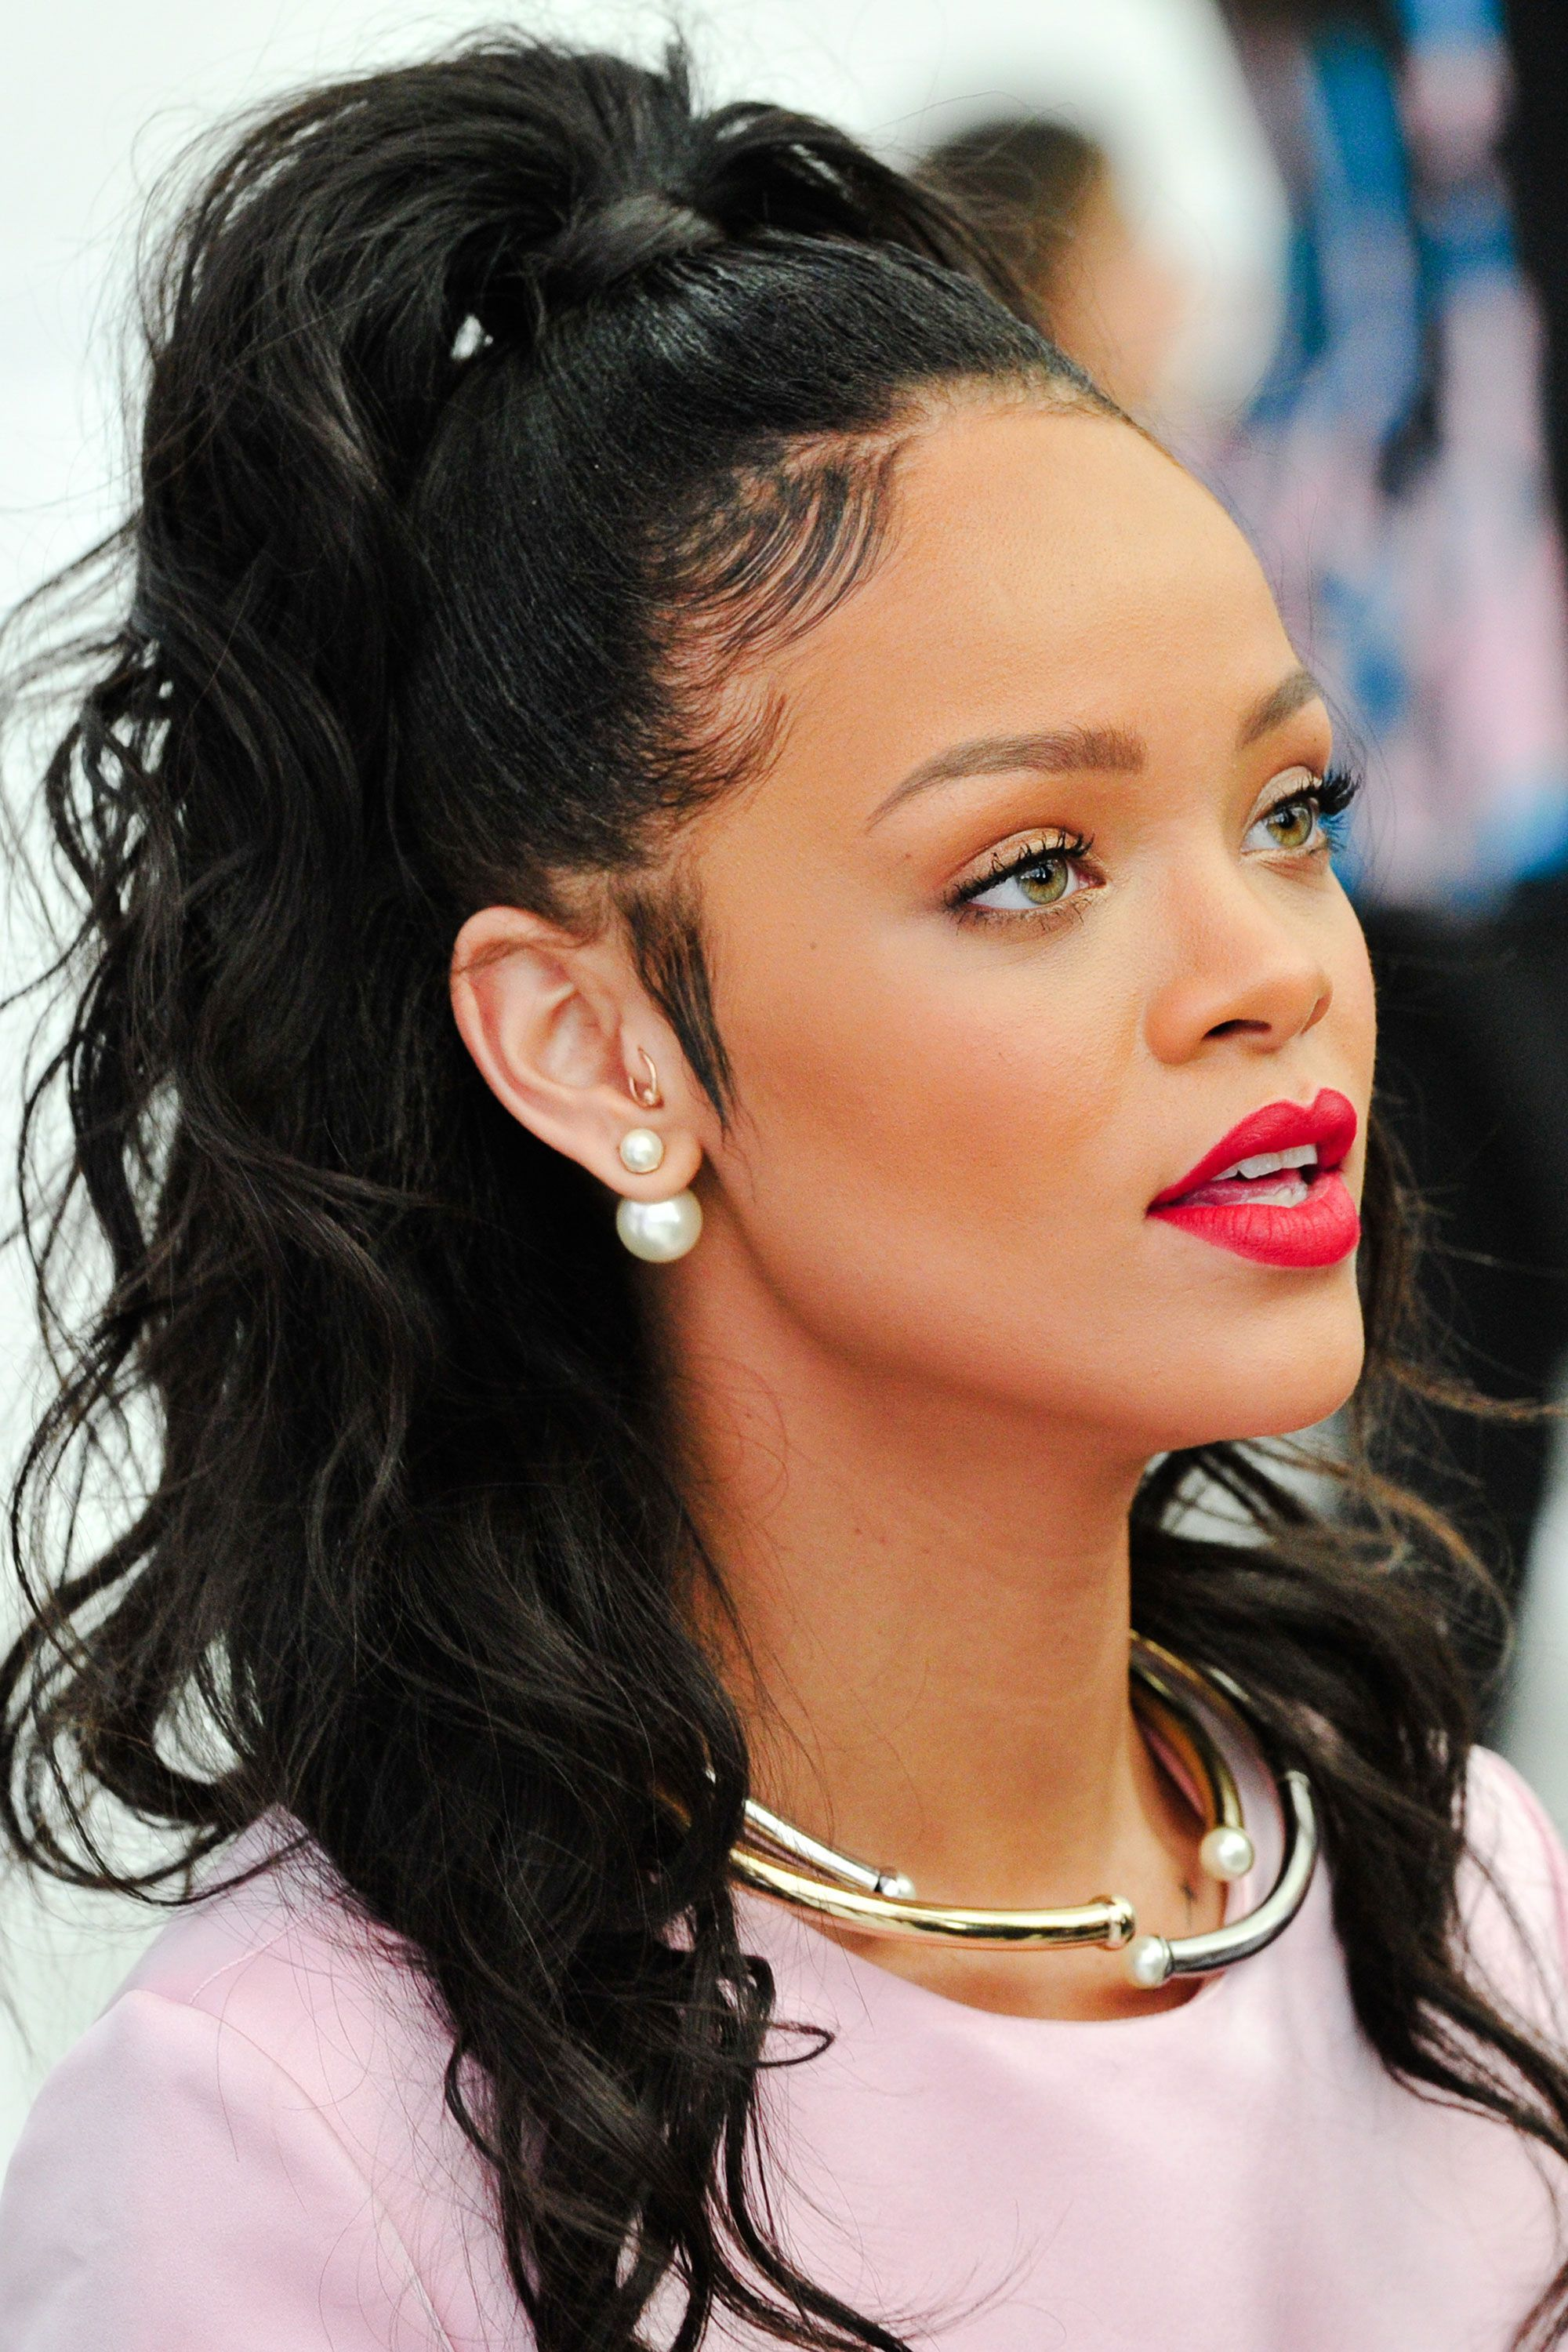 billboard chopard time pictures every awards rihanna photos diamonds wore earrings footwear she